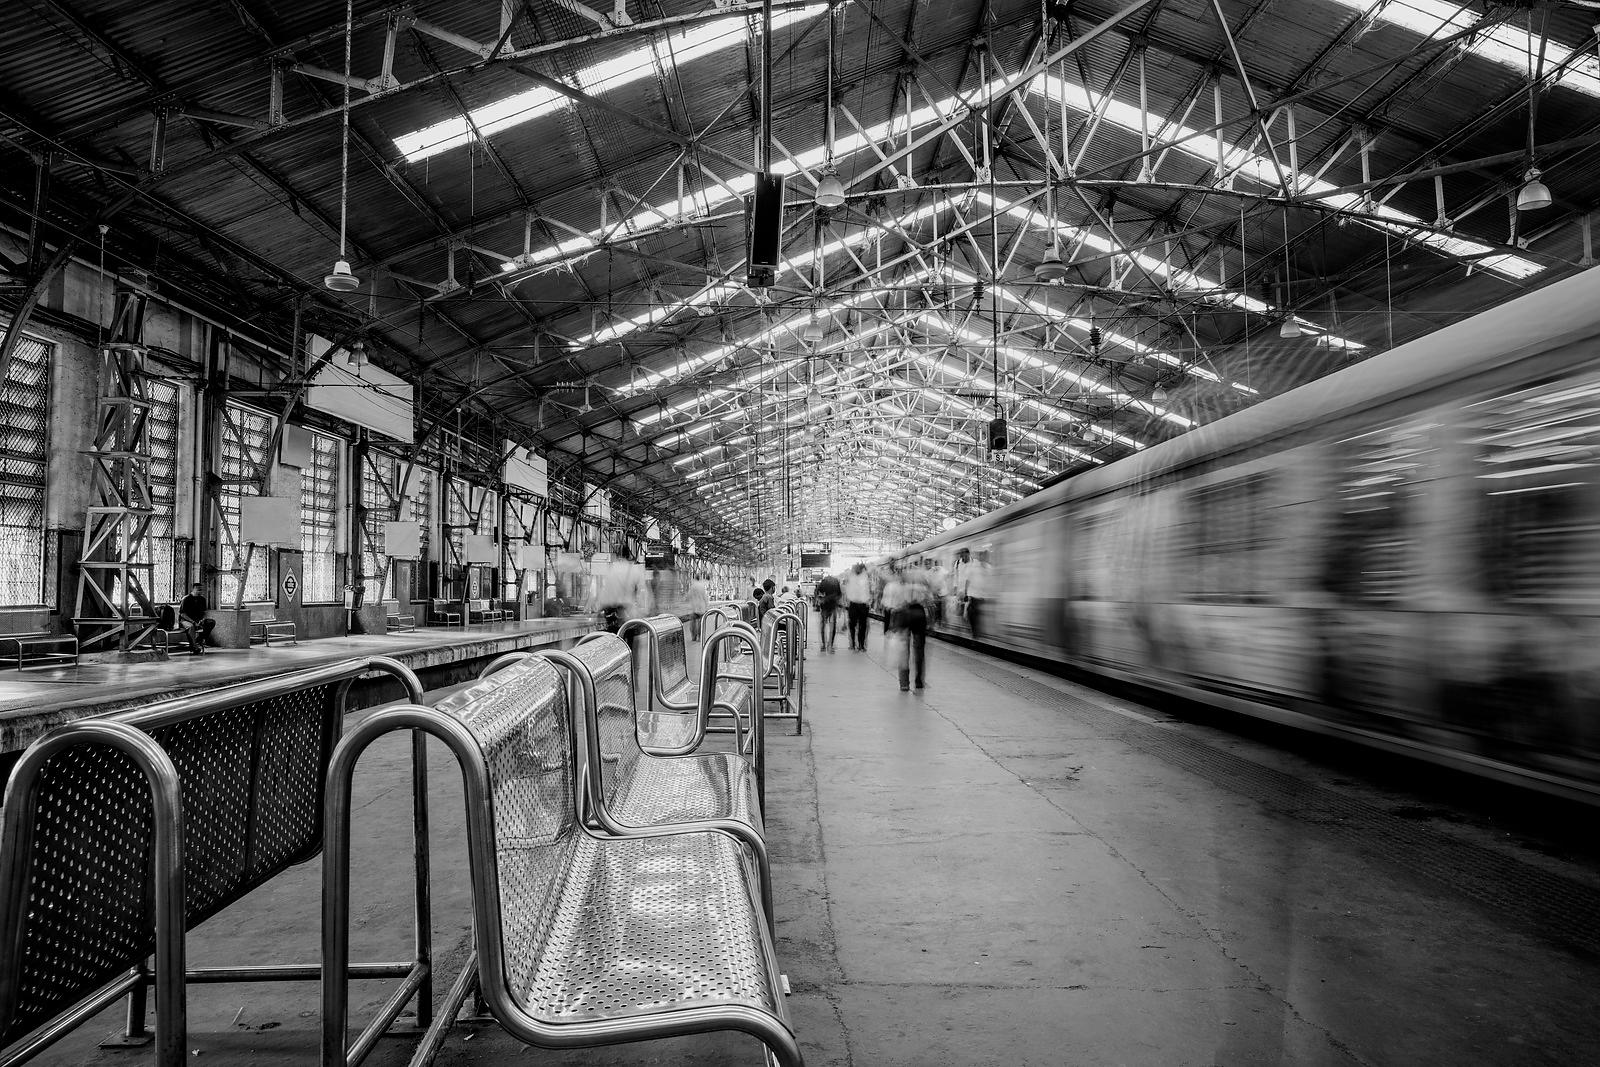 Ghost Train No.5  Mumbai India 2015  Photographer Neil Emmerson  £975 inc uk vat  Edition of 25